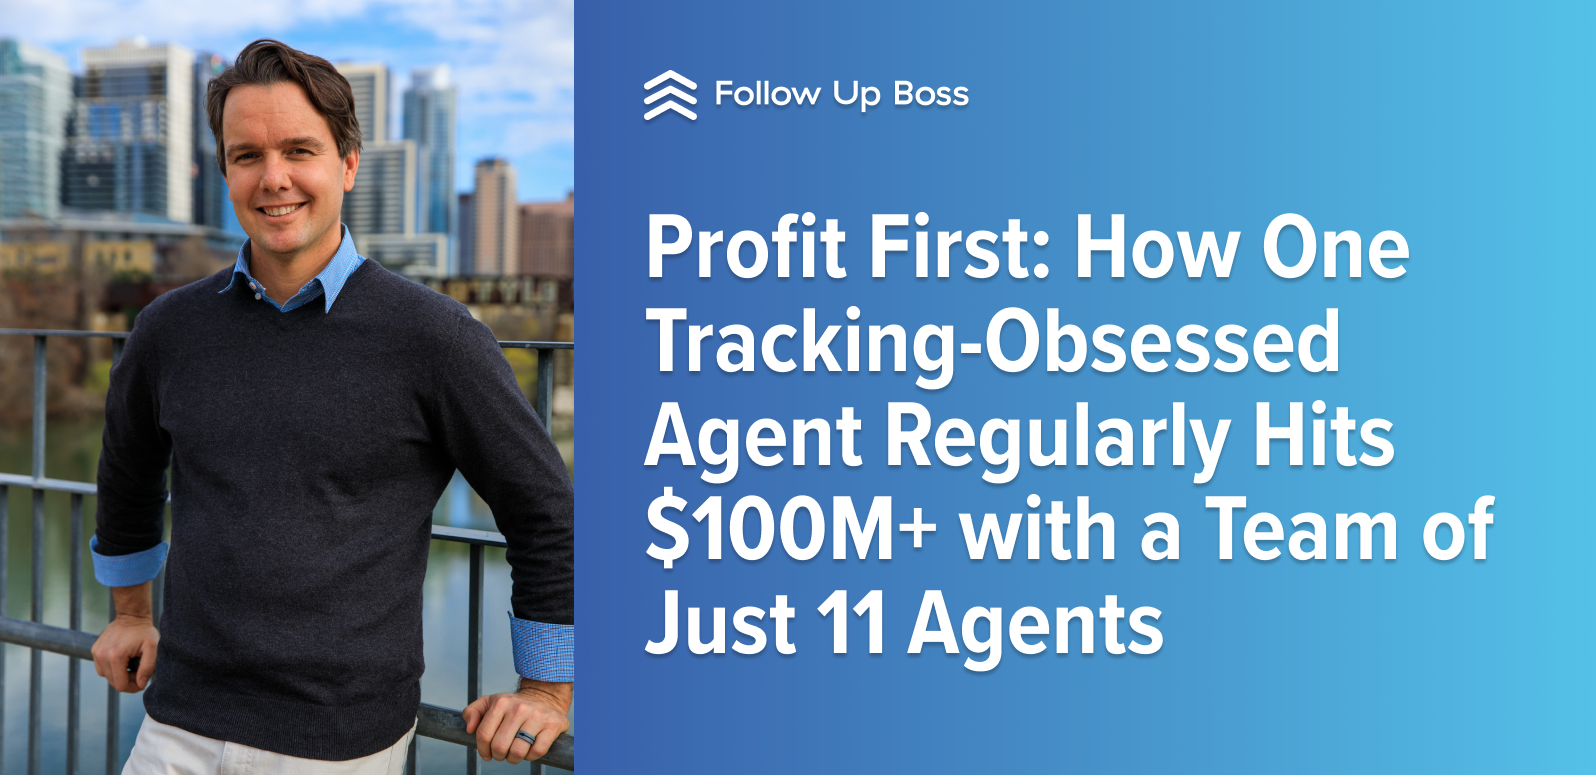 Profit First: How One Tracking-Obsessed Agent Regularly Hits $100M+ with a Team of Just 11 Agents